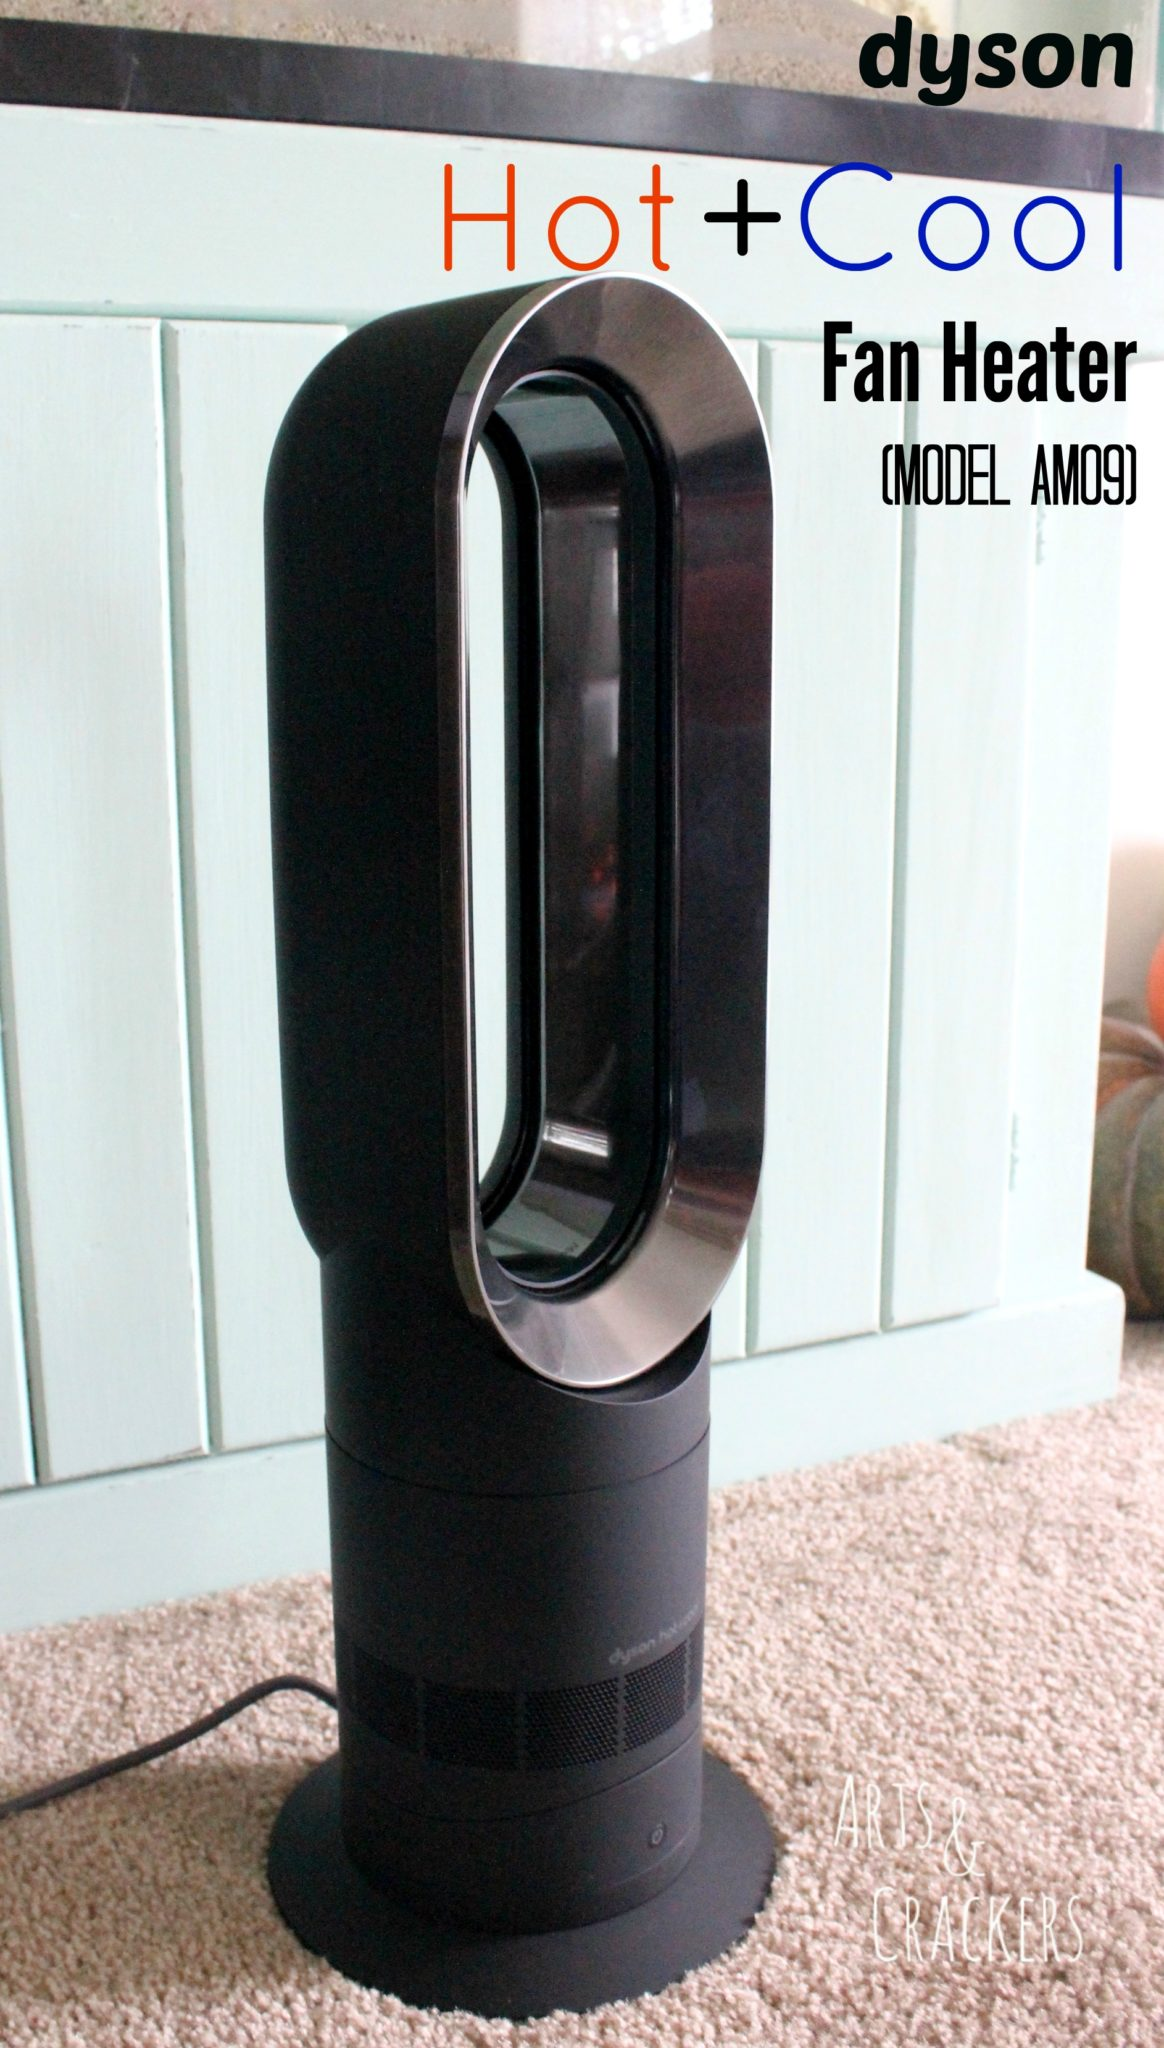 dyson hot and cool fan heater review arts crackers. Black Bedroom Furniture Sets. Home Design Ideas